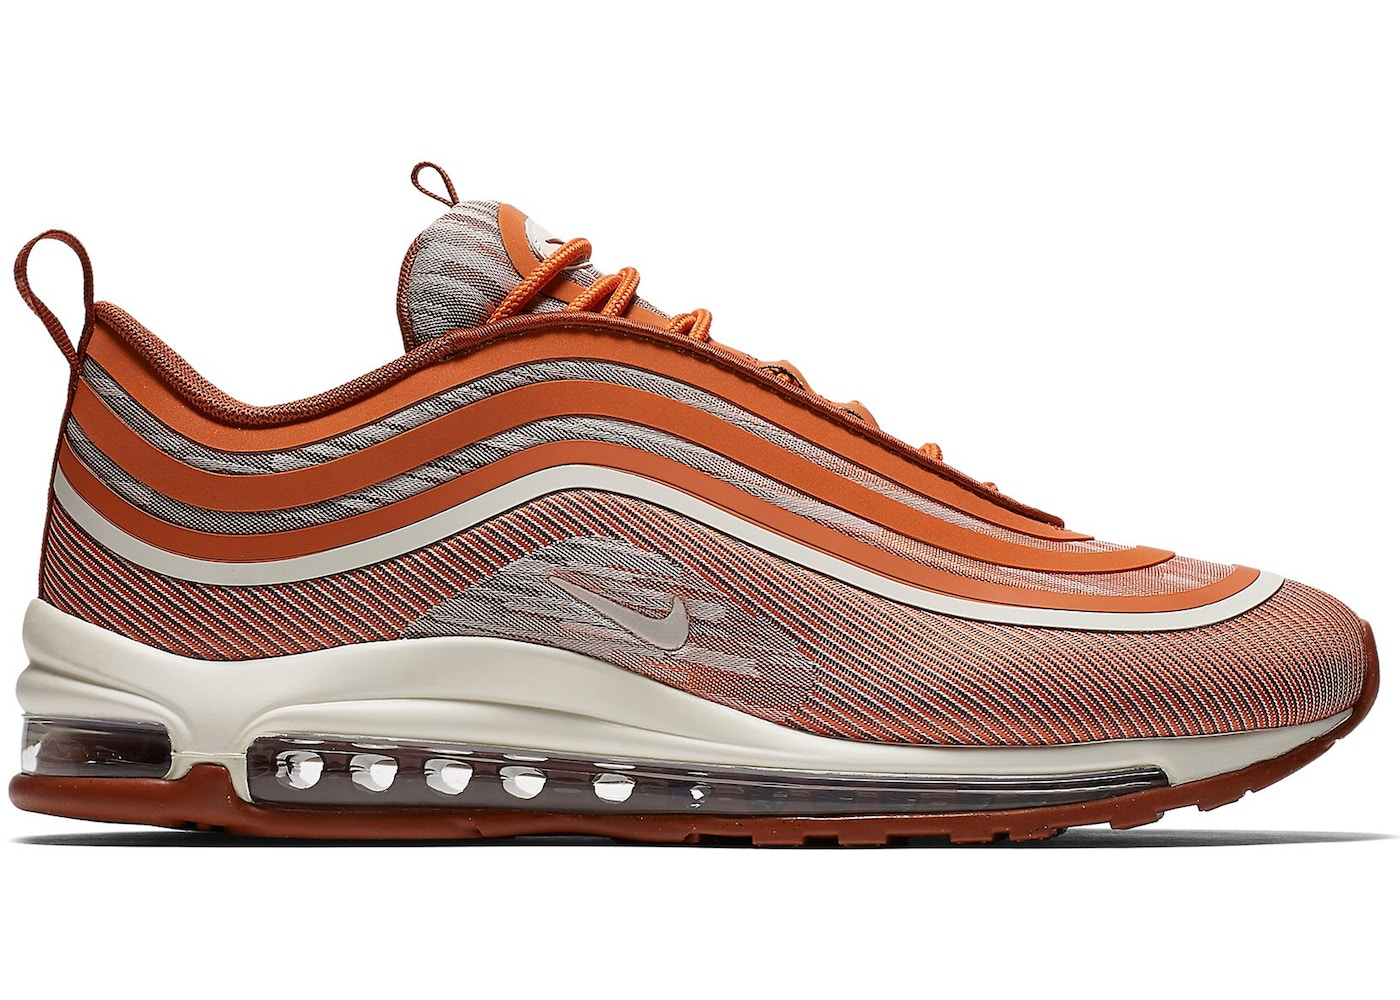 4bce289a5e Air Max 97 Ultra 17 Vintage Coral Mars Stone - 918356-800